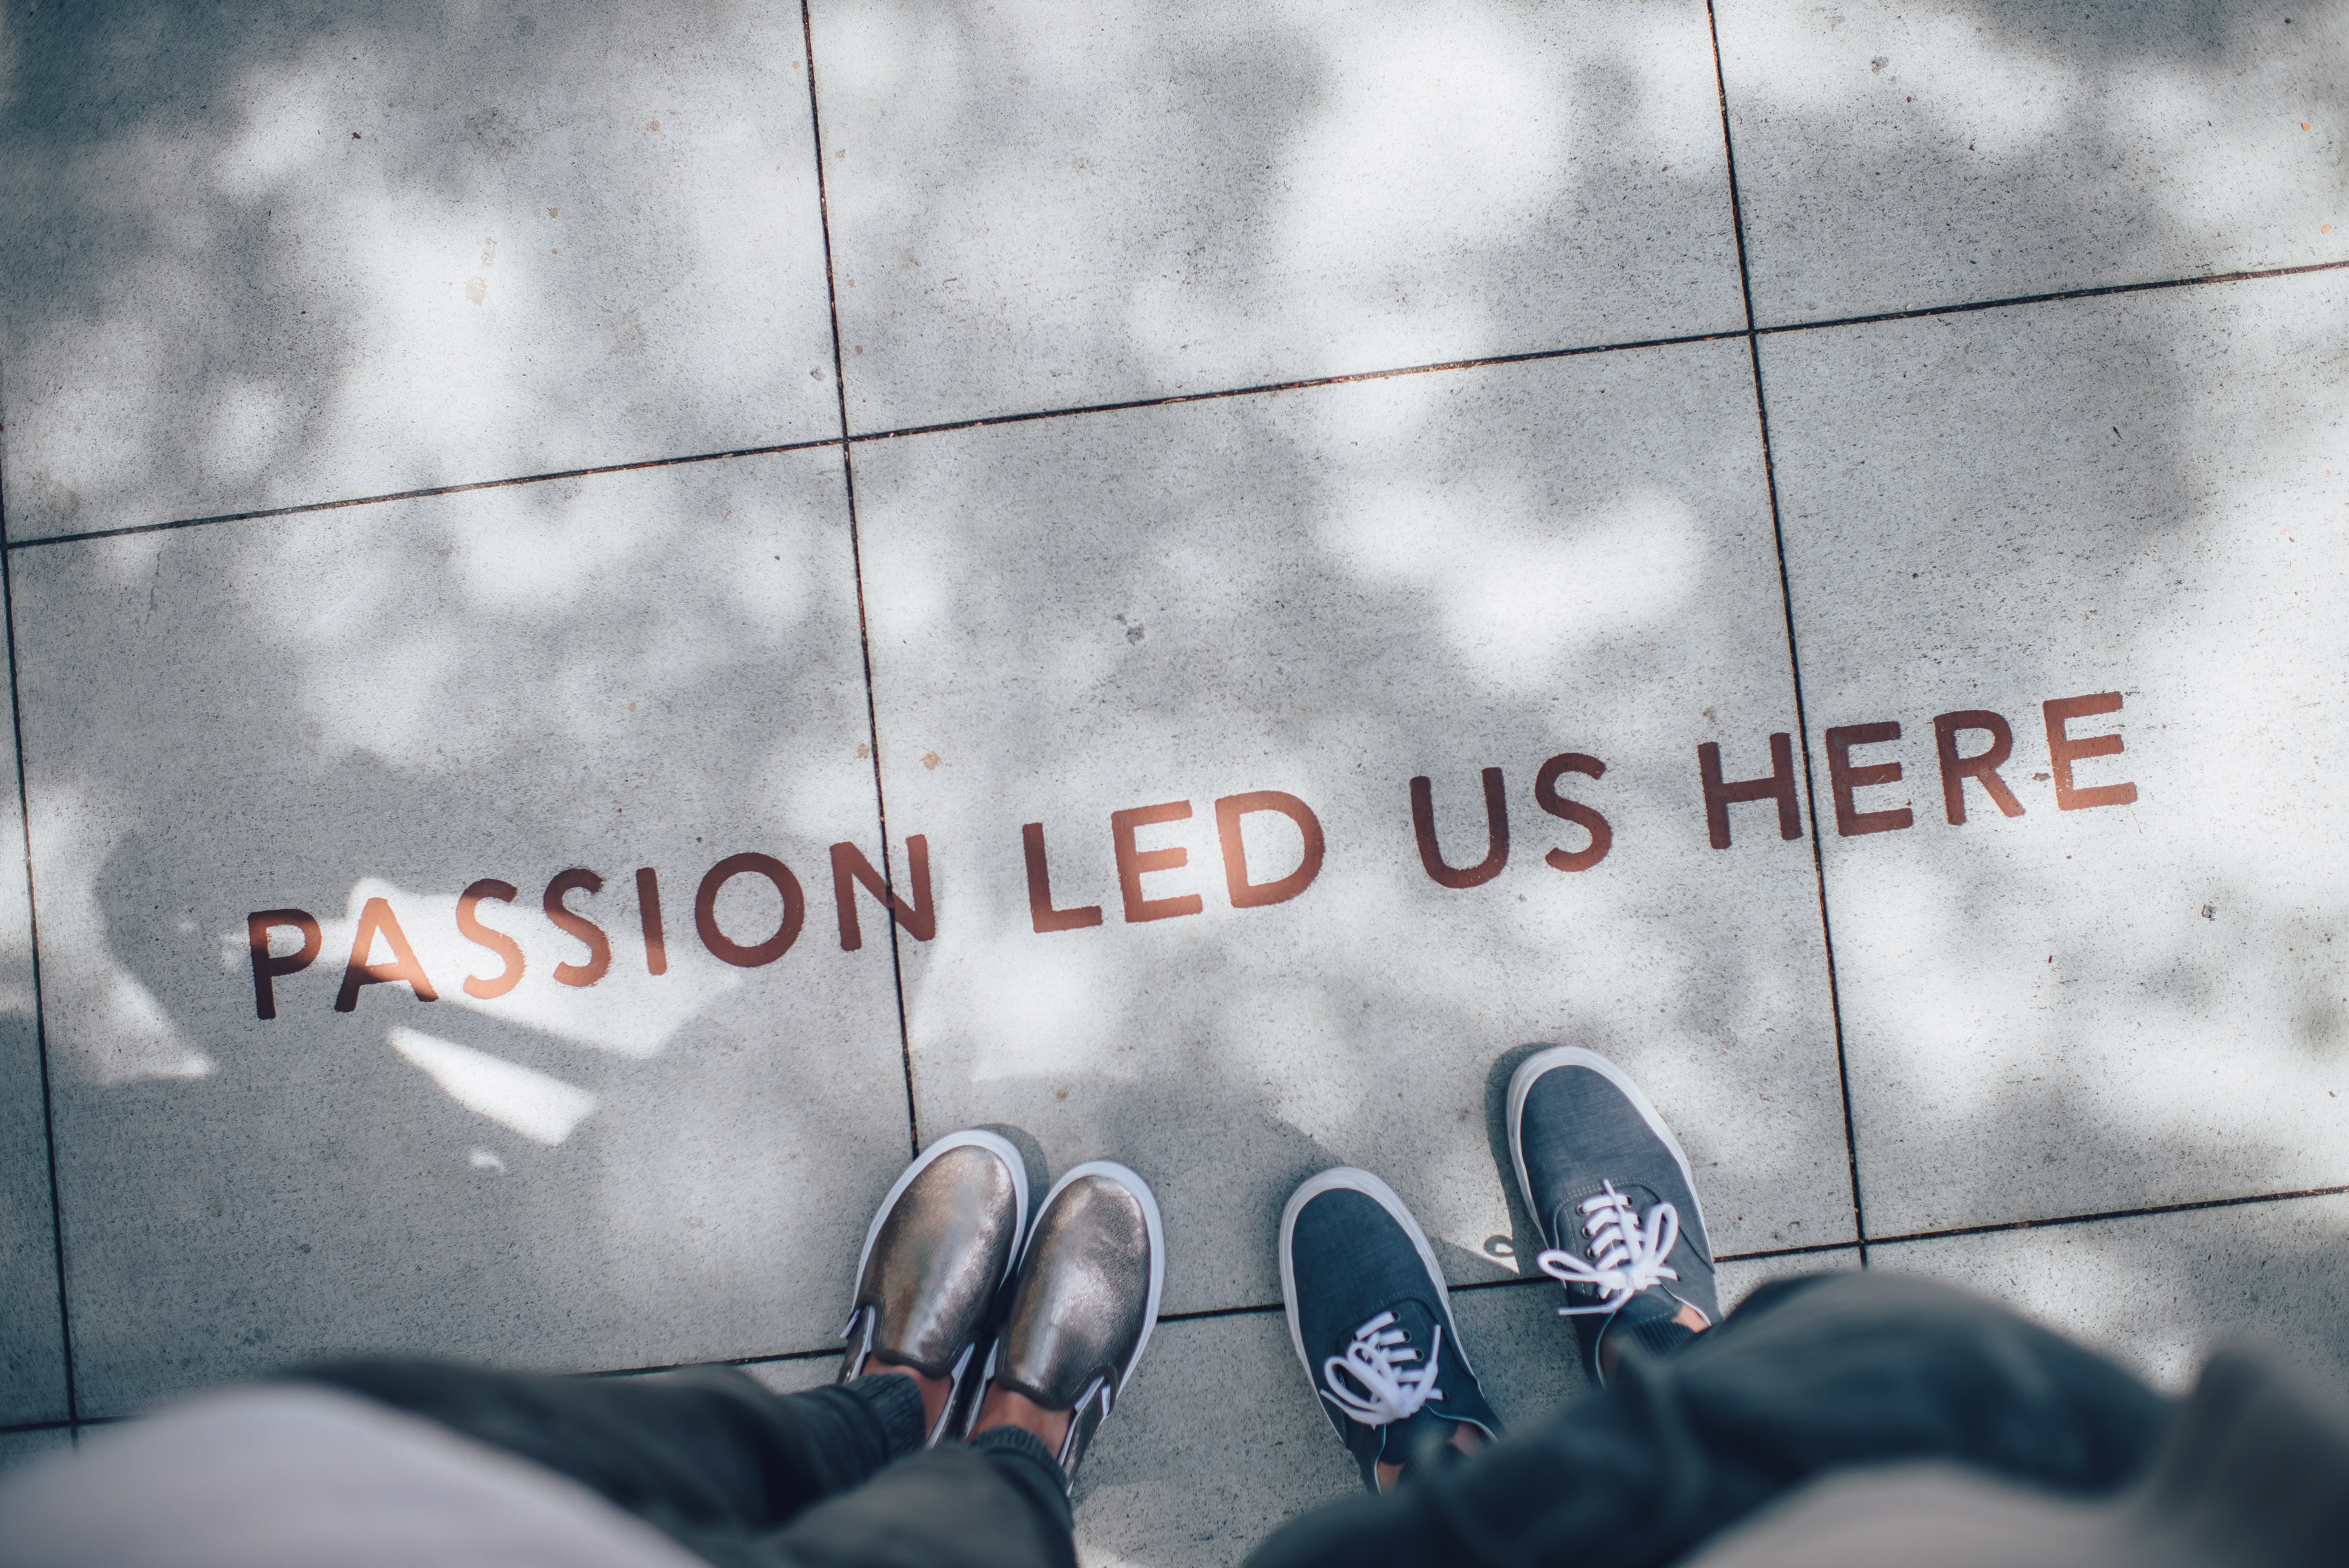 Passion led us here. Photo by Ian Schneider on Unsplash